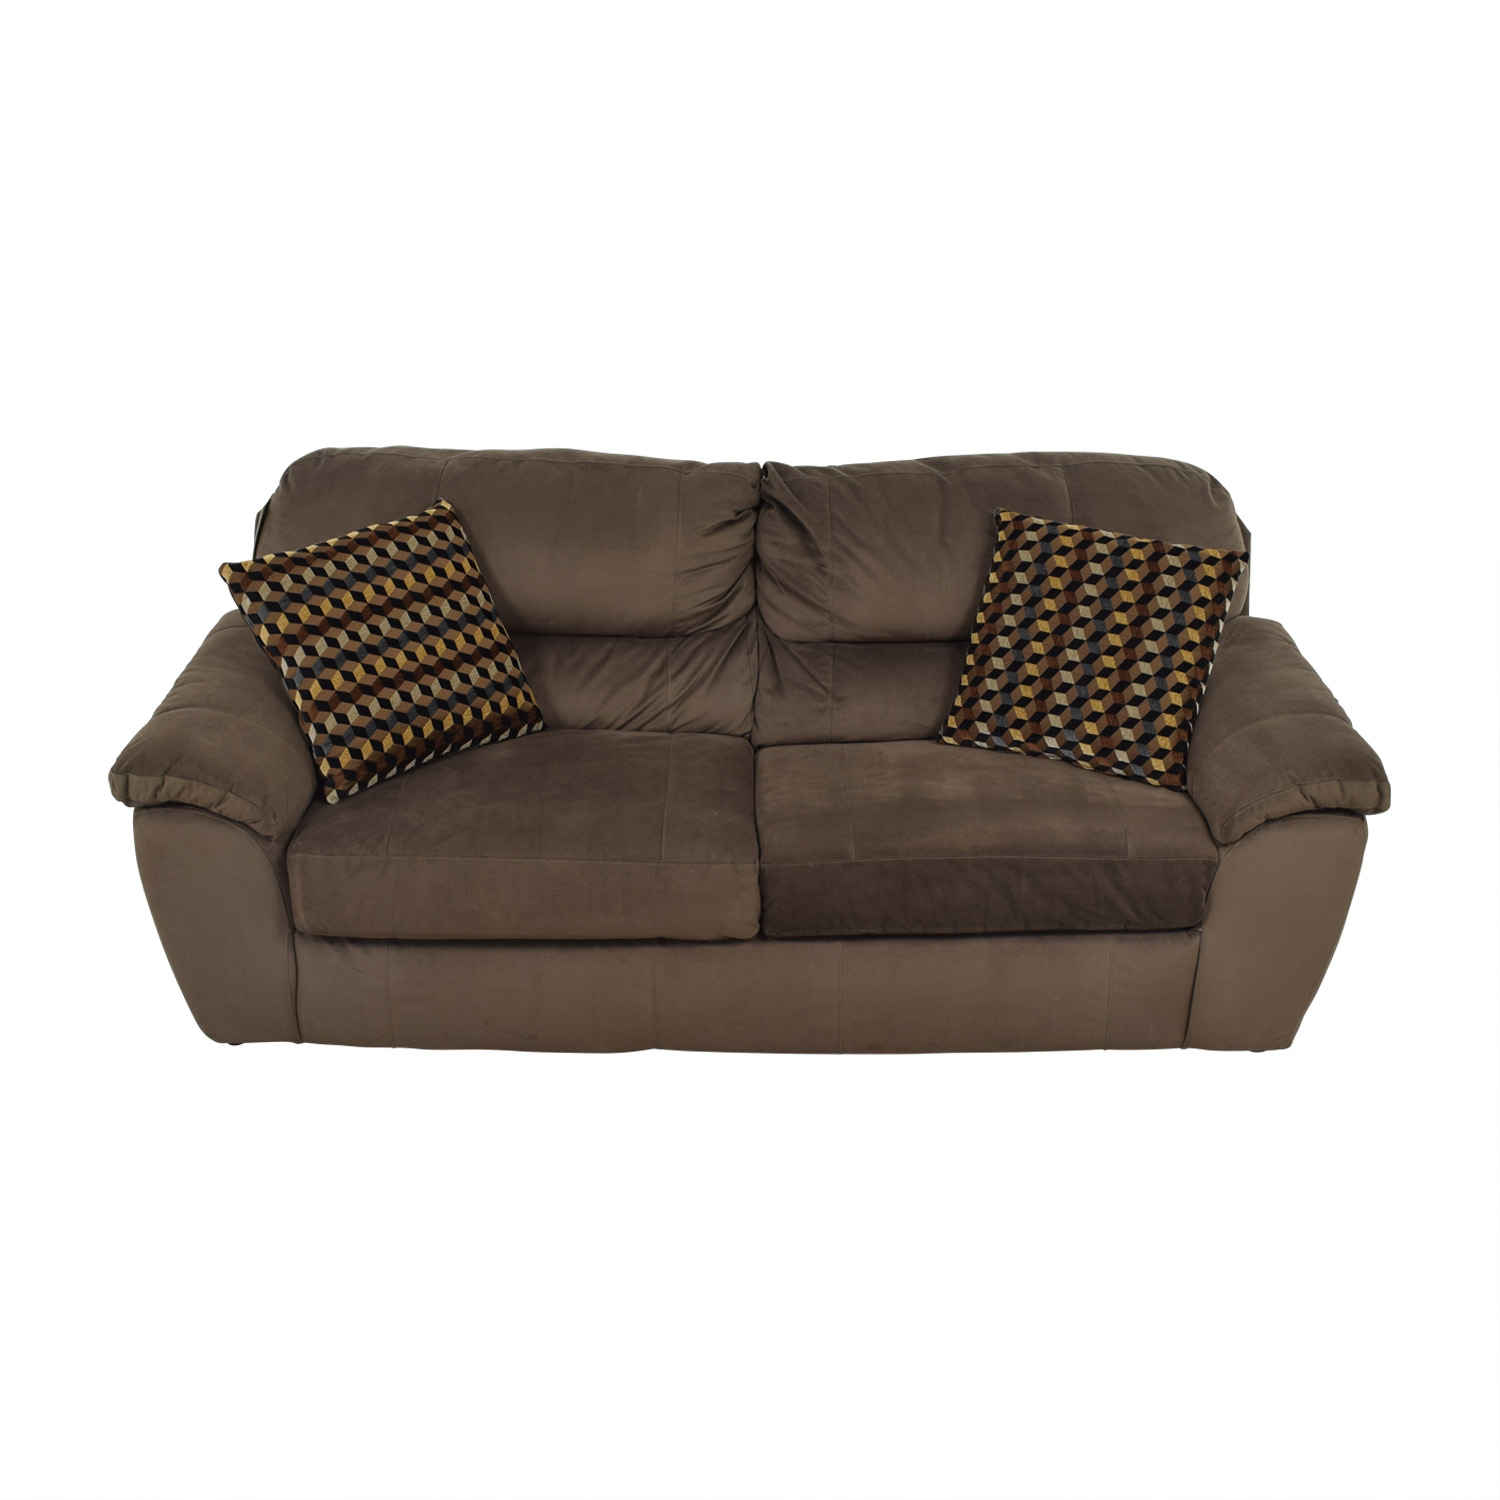 ... Bobs Furniture Bobs Furniture Brown Bailey Two Cushion Sofa For Sale ...